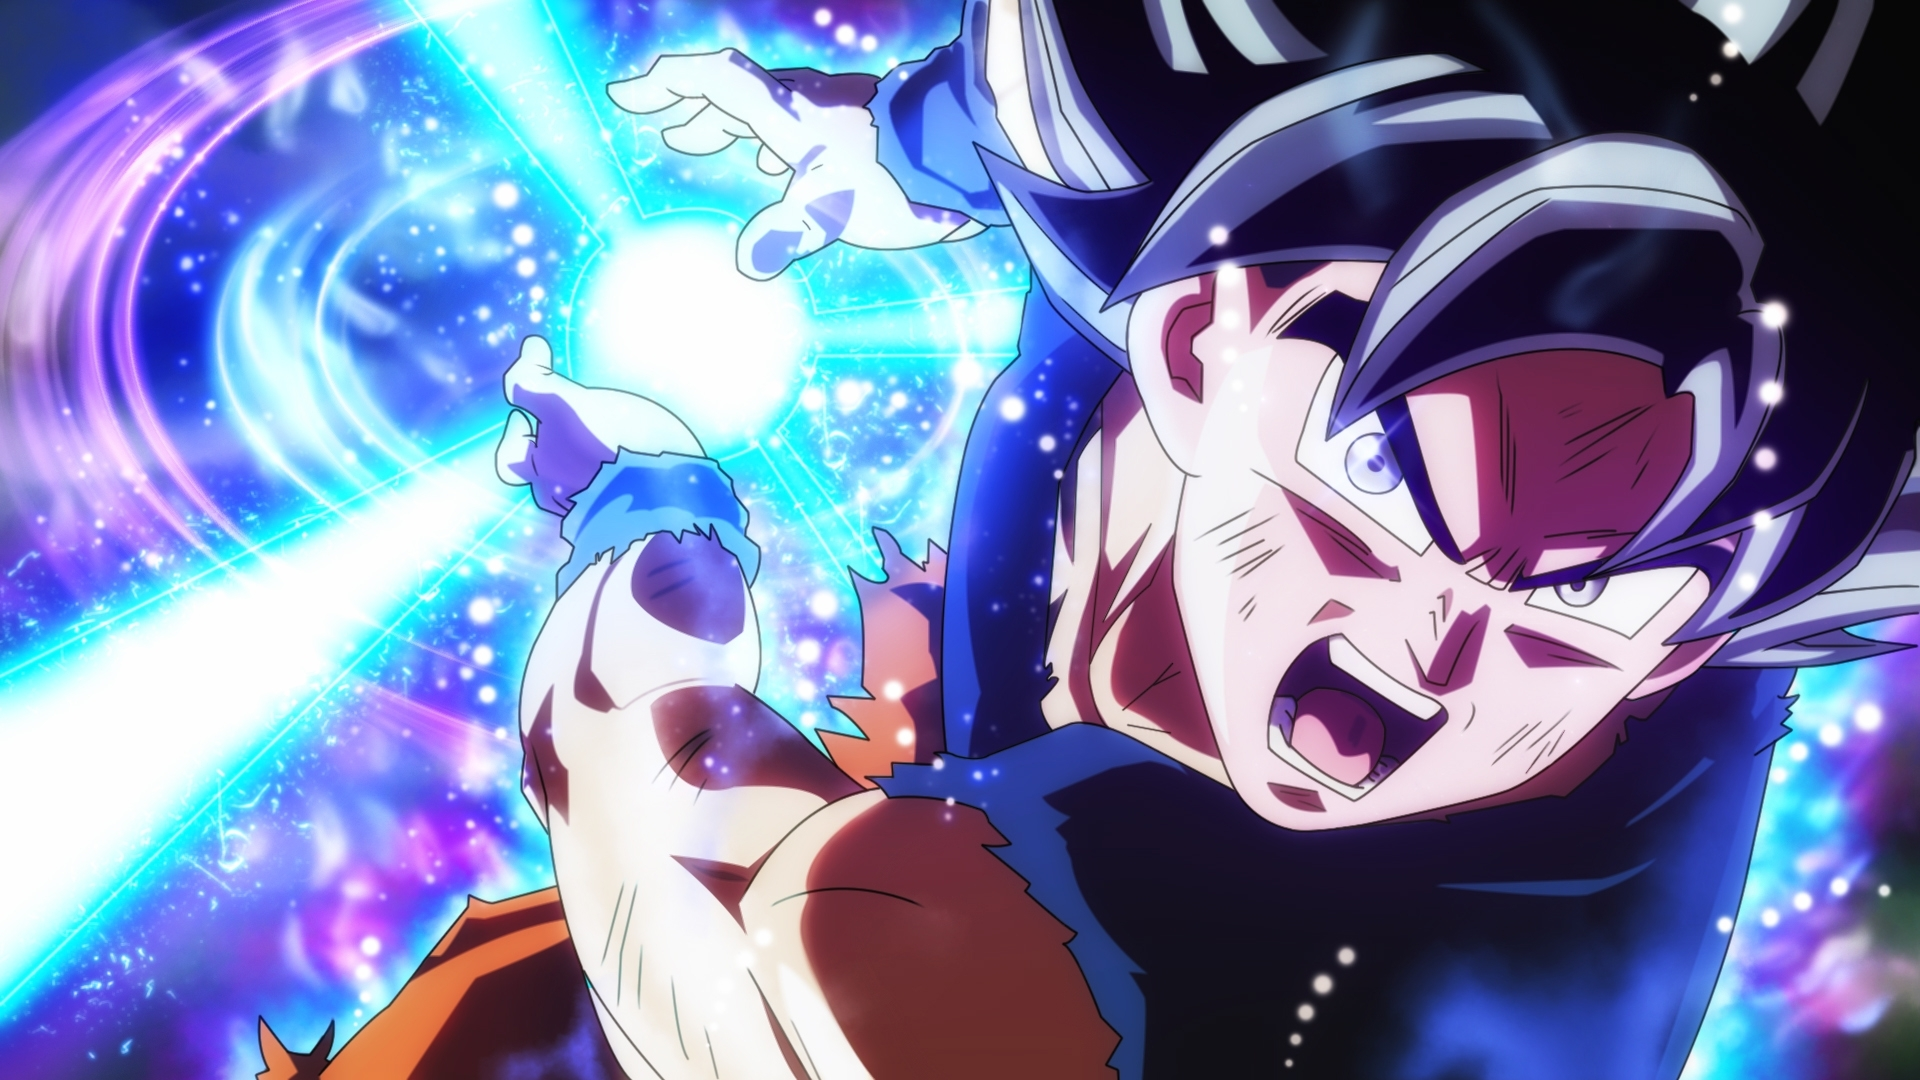 wallpaper : dragon ball super, son goku, ultra instinct goku